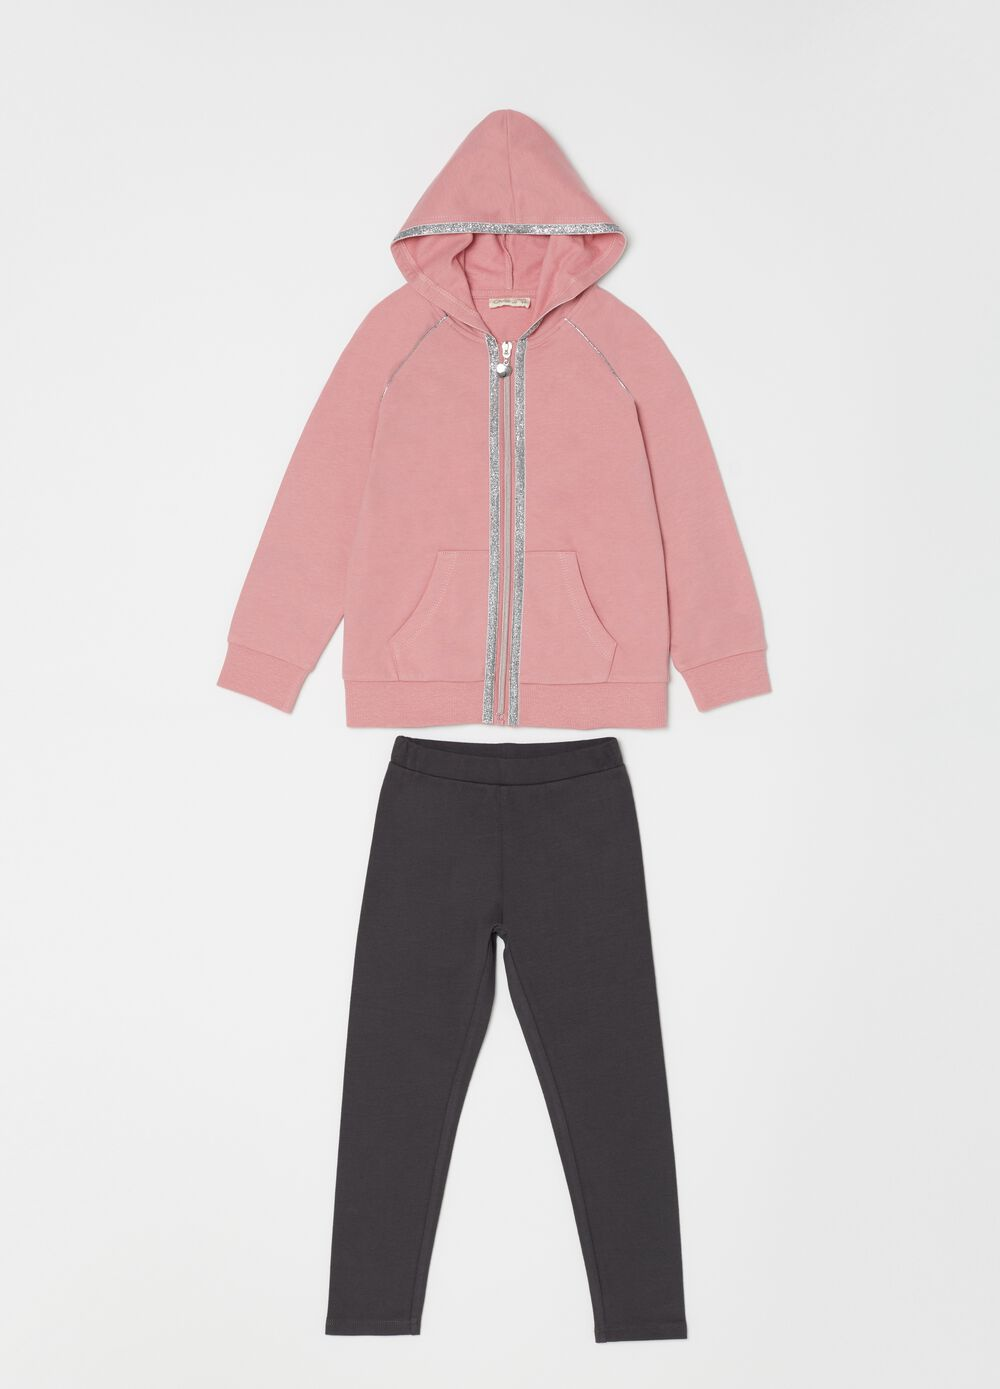 Jogging set with sweatshirt and trousers with glitter print